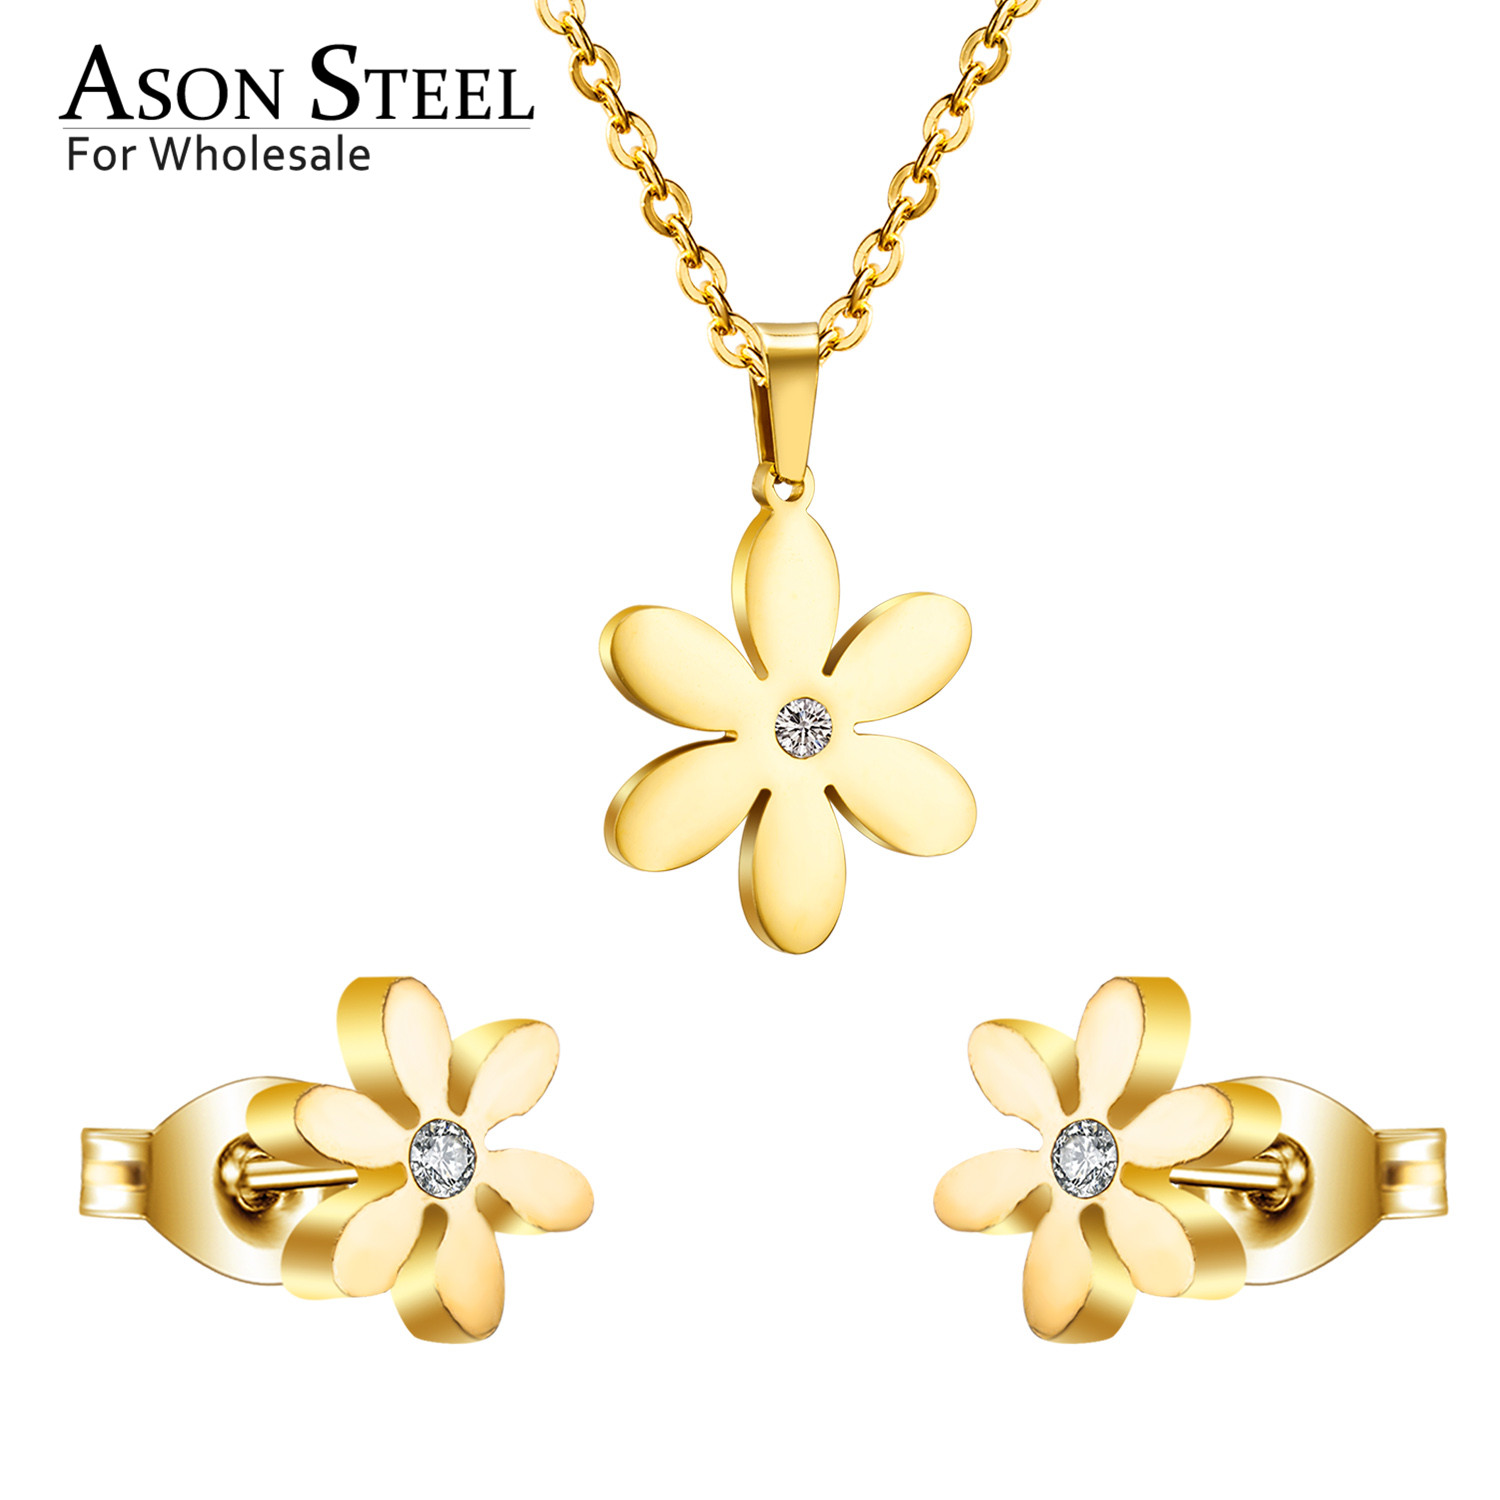 ASONSTEEL <font><b>Jewelry</b></font> 316L Stainless Steel Gold Color <font><b>Jewelry</b></font> <font><b>Sets</b></font> <font><b>for</b></font> Women <font><b>2019</b></font> Flower Pendant Necklace Small Earrings <font><b>for</b></font> Femme image